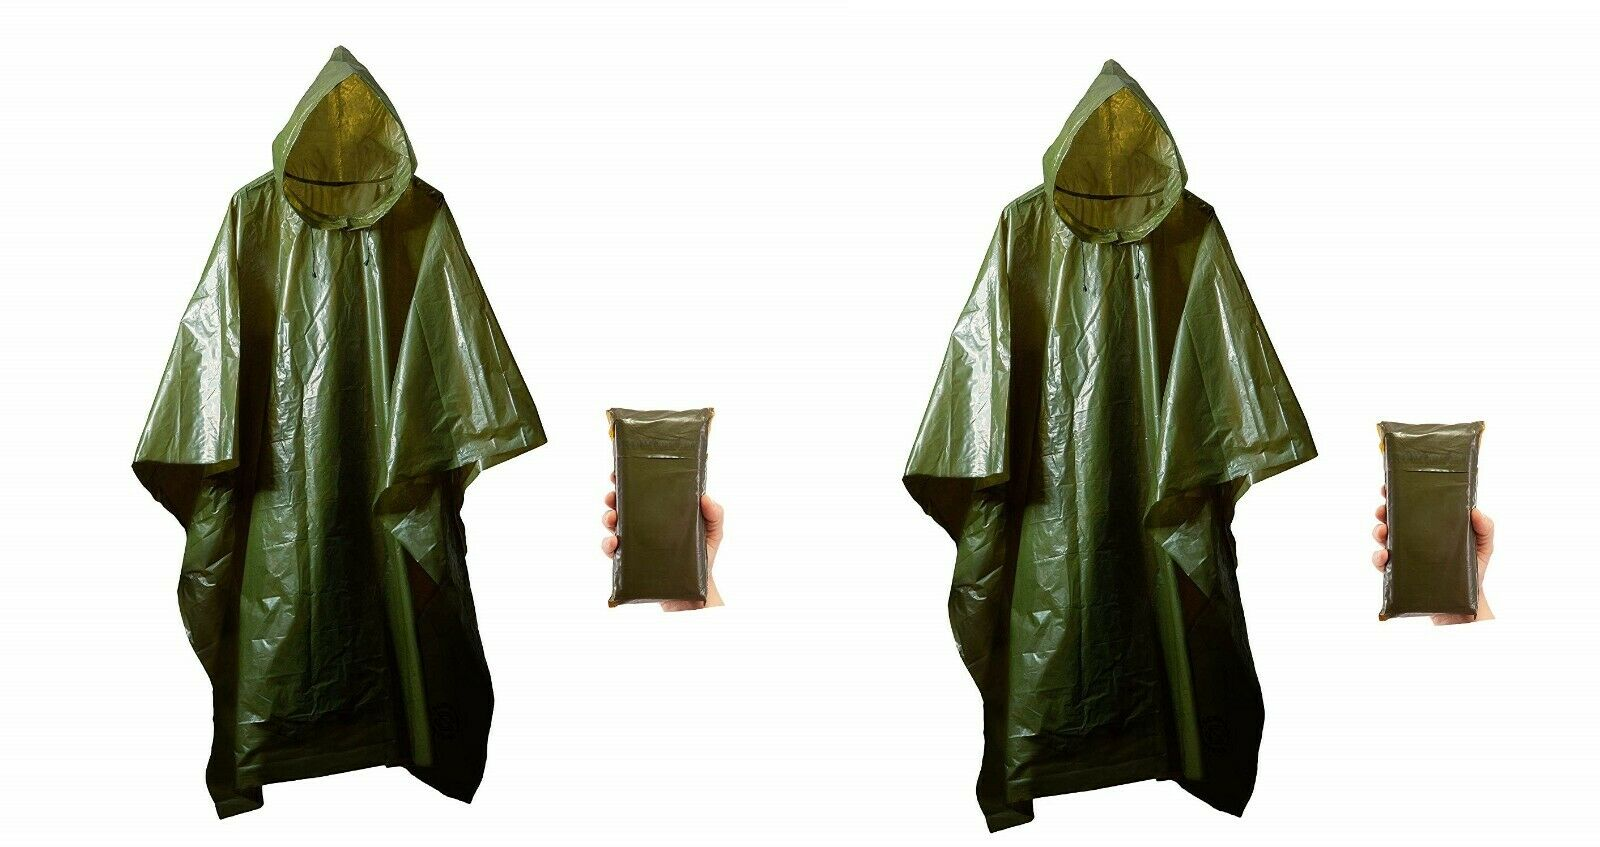 (2) Survival General Lightweight Rain Gear Poncho Emergency Tent Cover Shelter